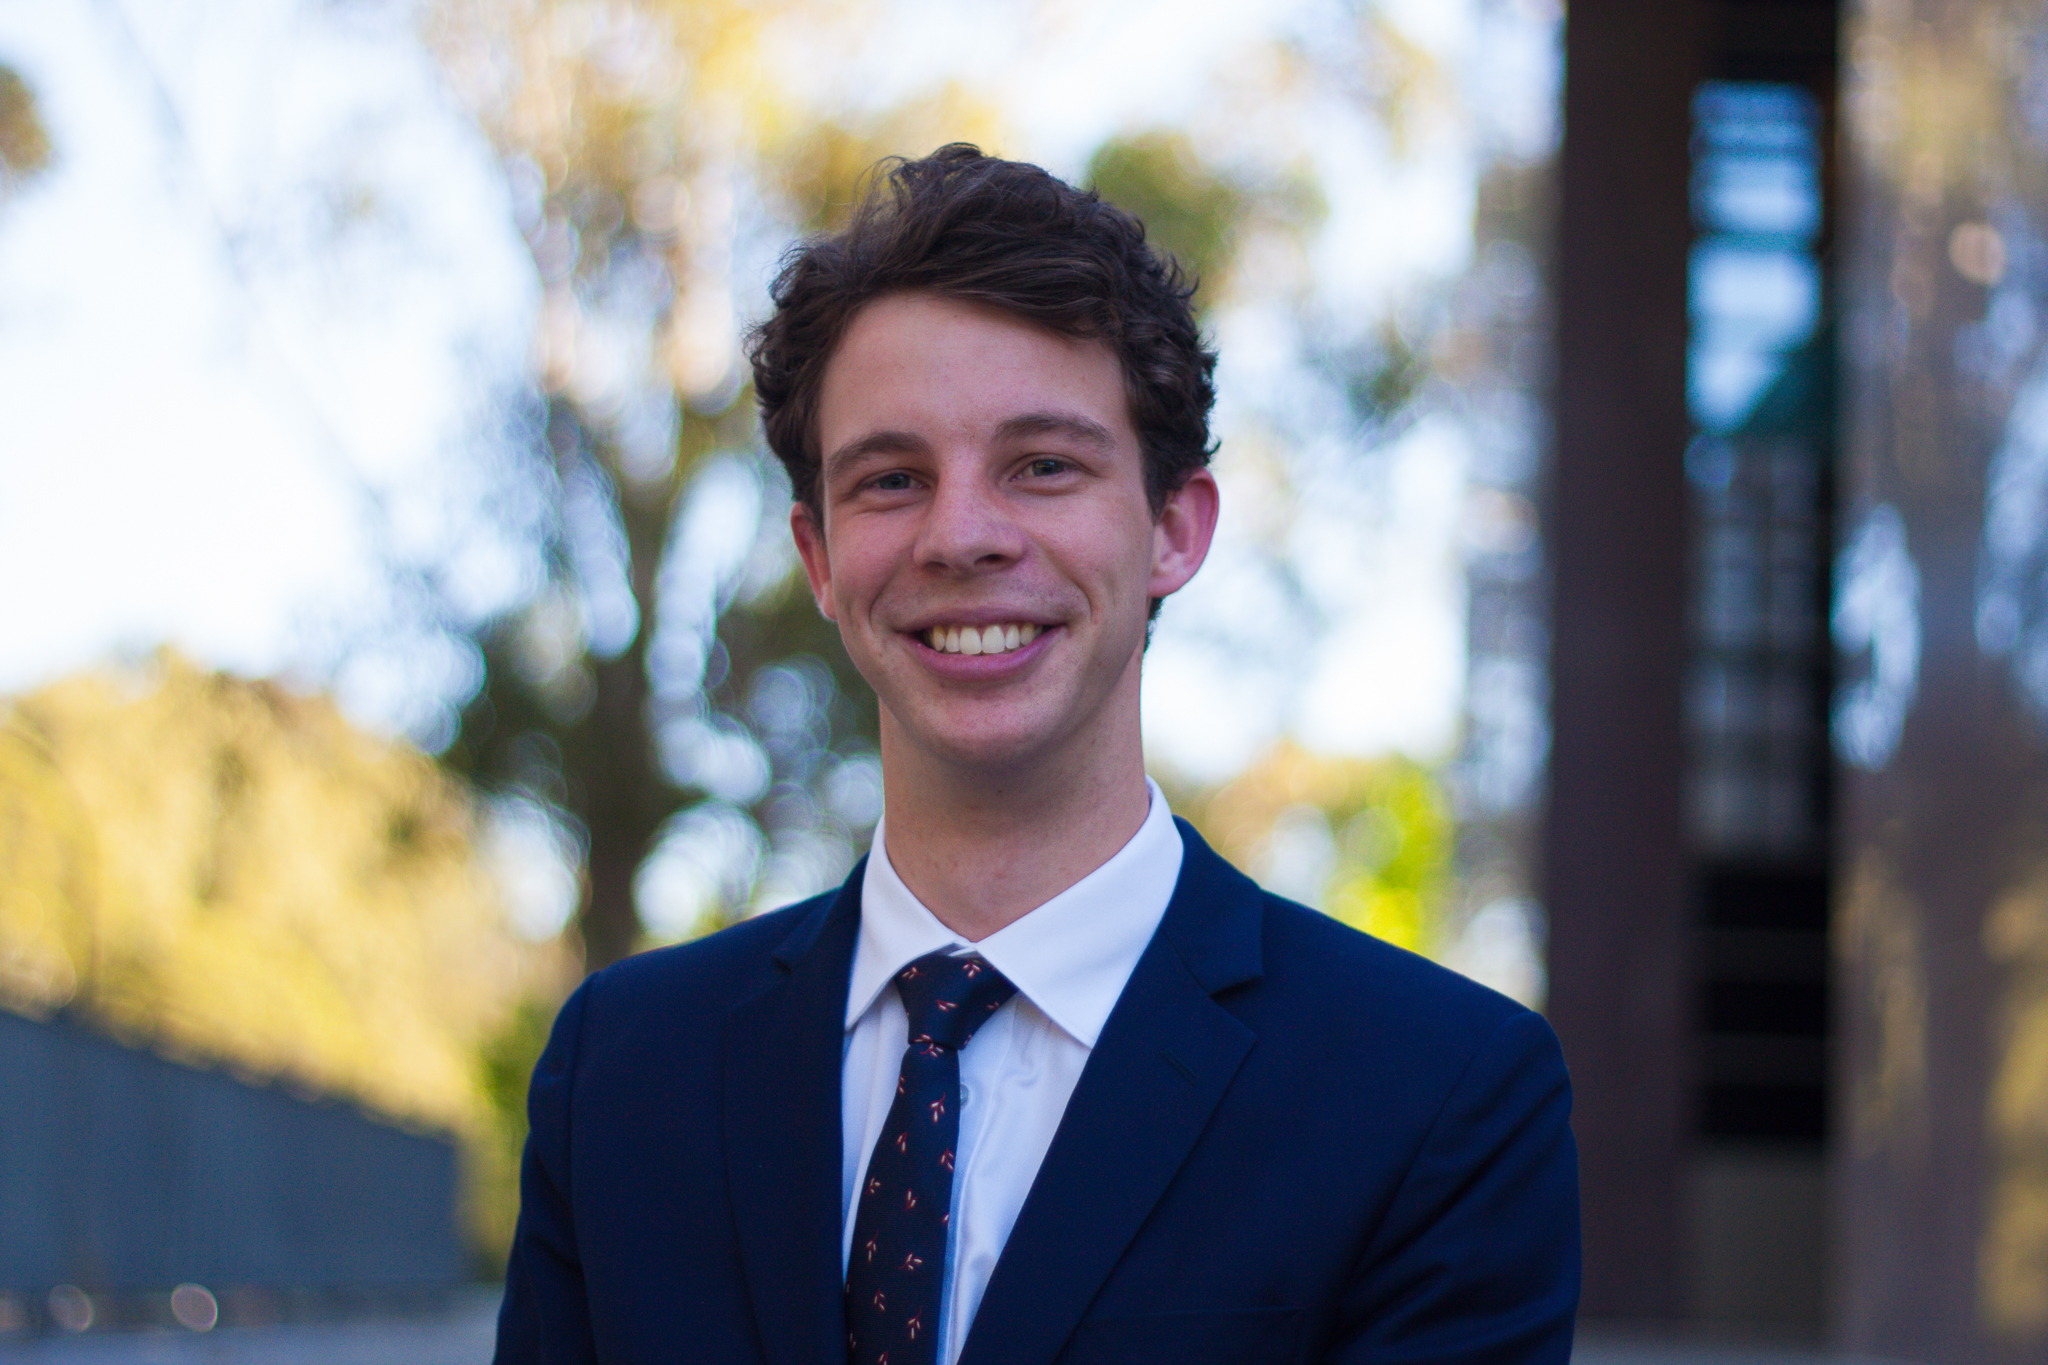 William Macleod  |Client Relations Lead  William has completed a Bachelor of Commerce with majors in Finance and Economics, and will undertake Honours in Economics in 2018. He has also previously spent time studying at the London School of Economics. William has interned at Woodside Energy and Price Waterhouse Coopers, and will be interning at Argonaut in 2018. His previous case experience includes working with Telethon Kids Institute and EON Foundation.